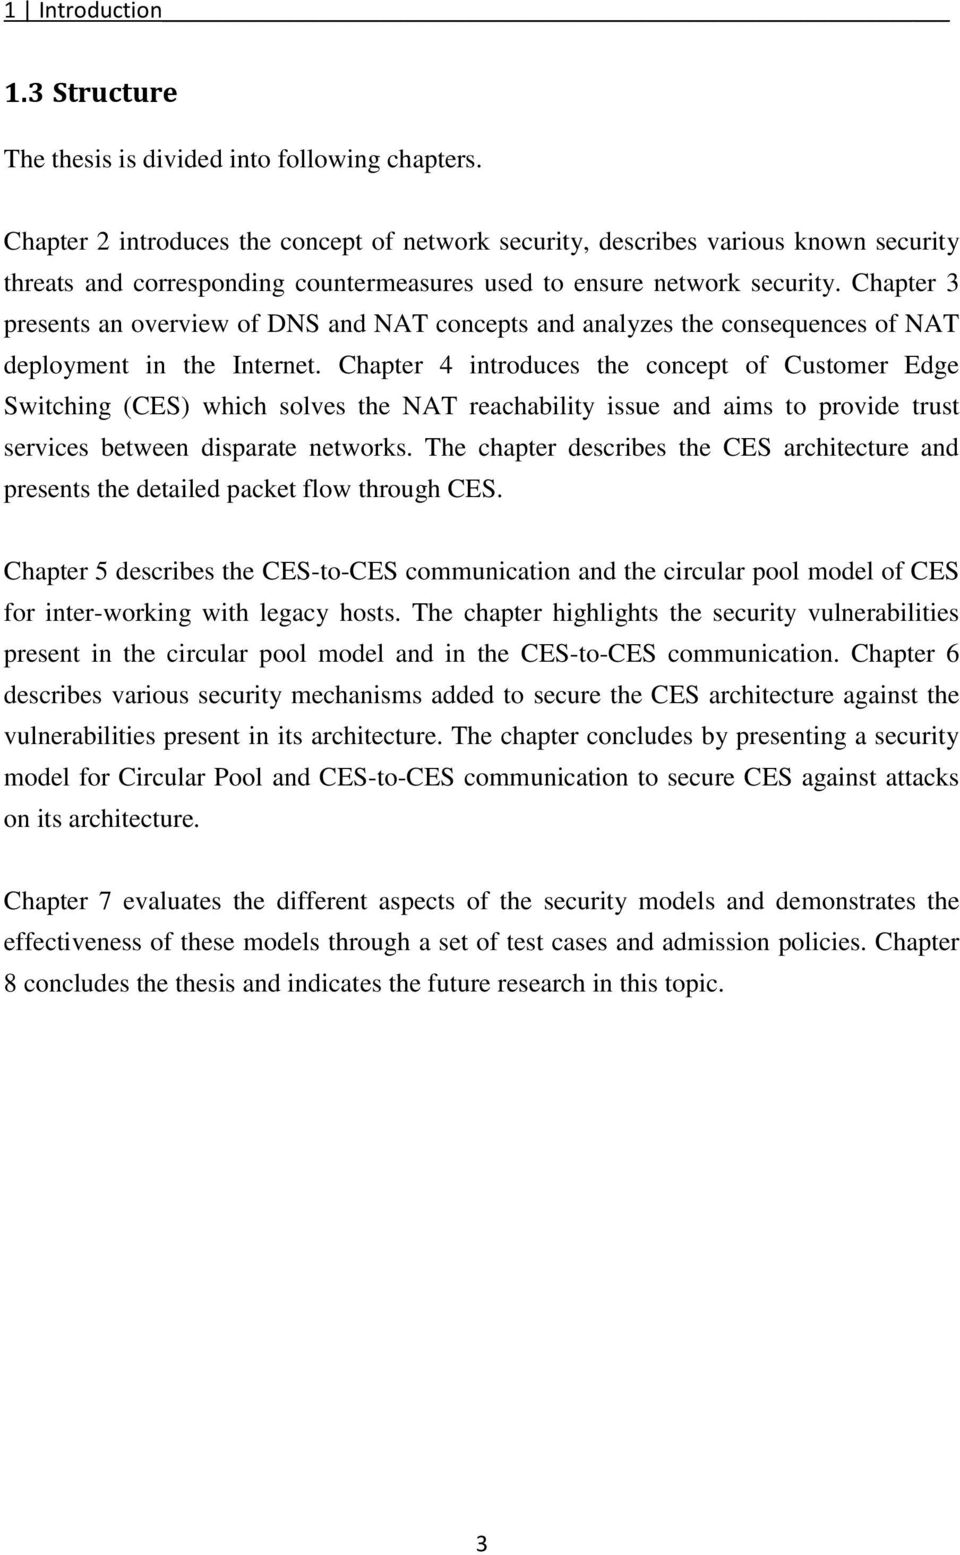 Chapter 3 presents an overview of DNS and NAT concepts and analyzes the consequences of NAT deployment in the Internet.